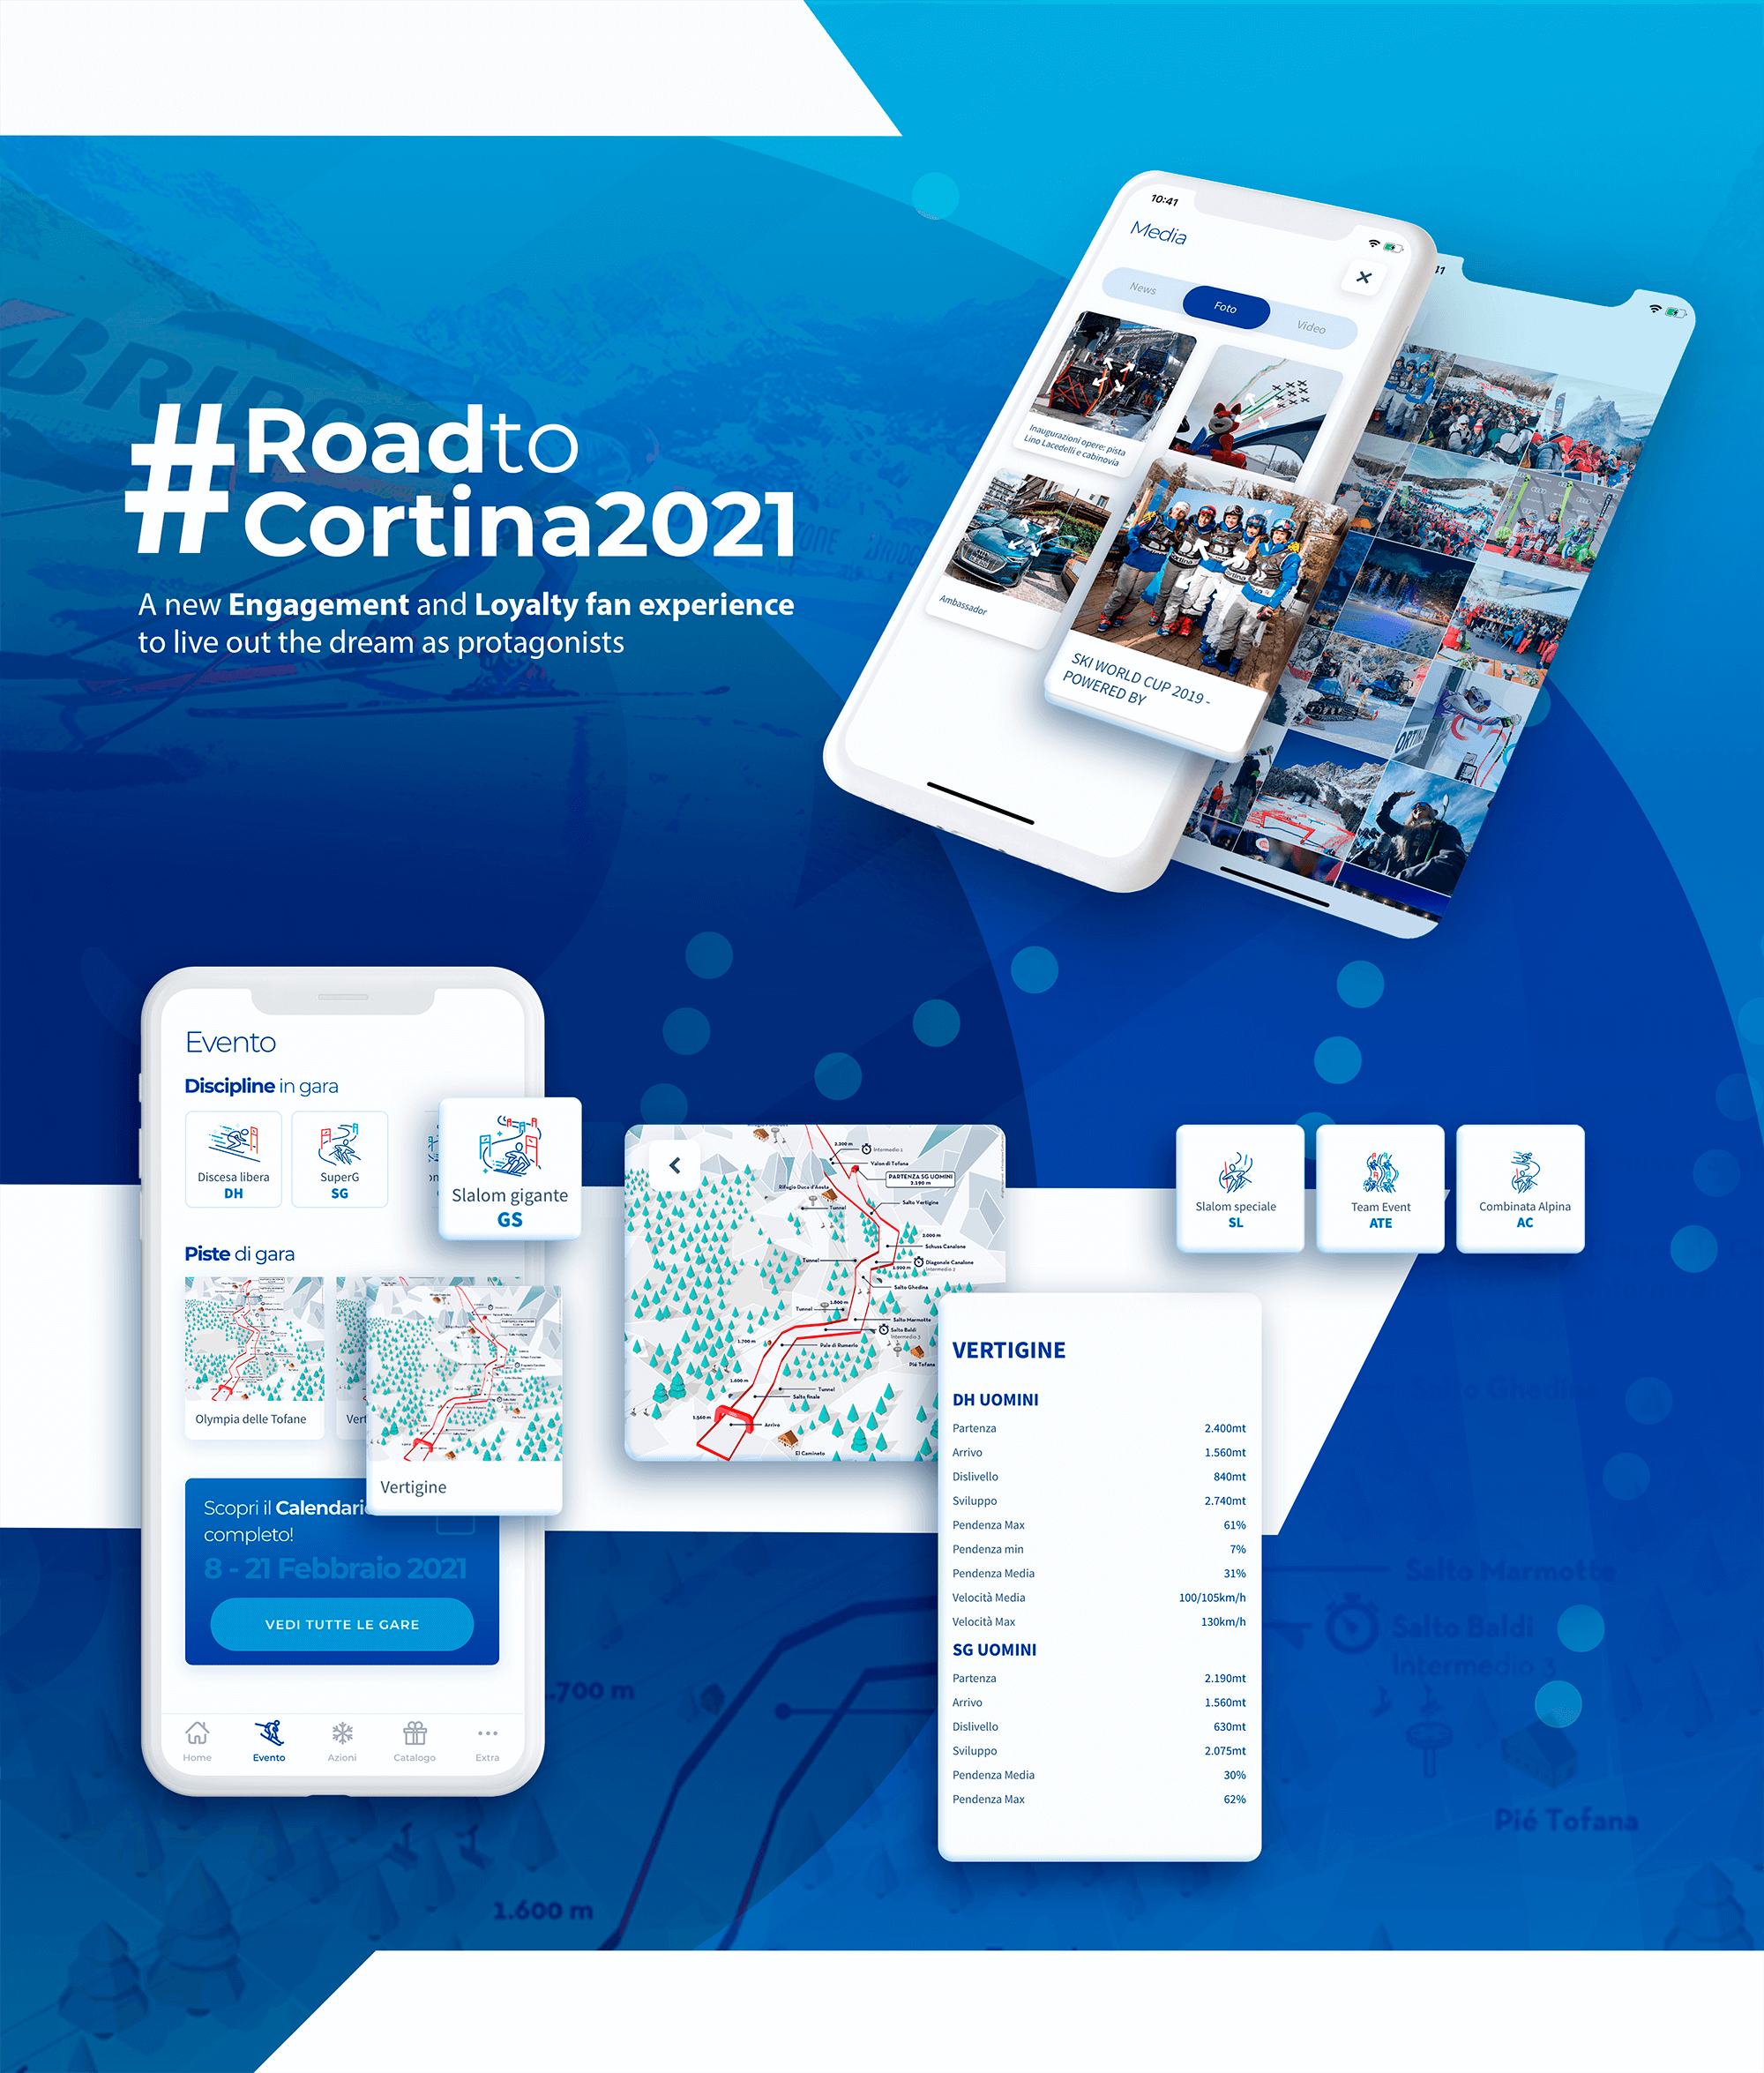 #roadtoCortina2021